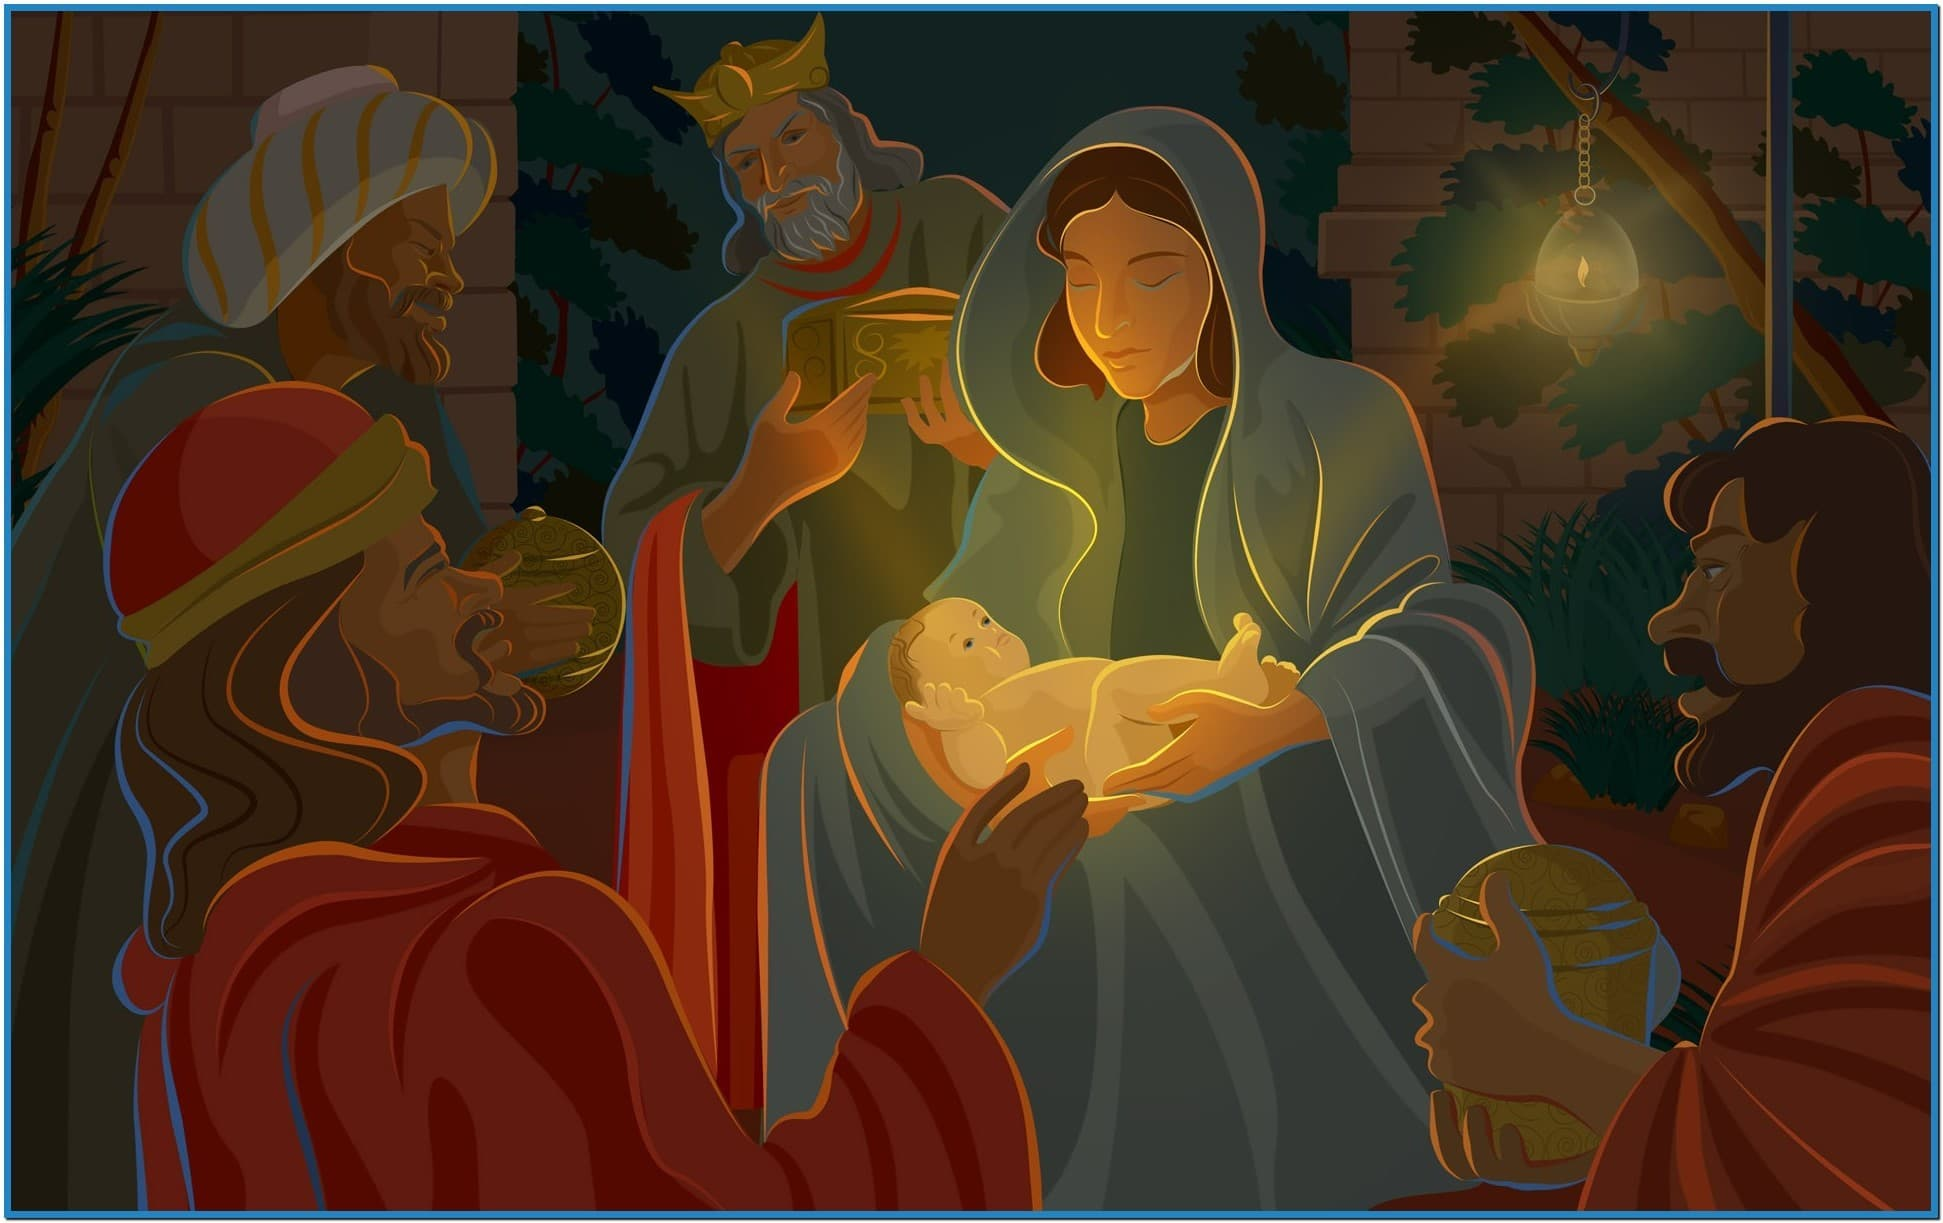 Christian christmas wallpapers and screensavers - Download free